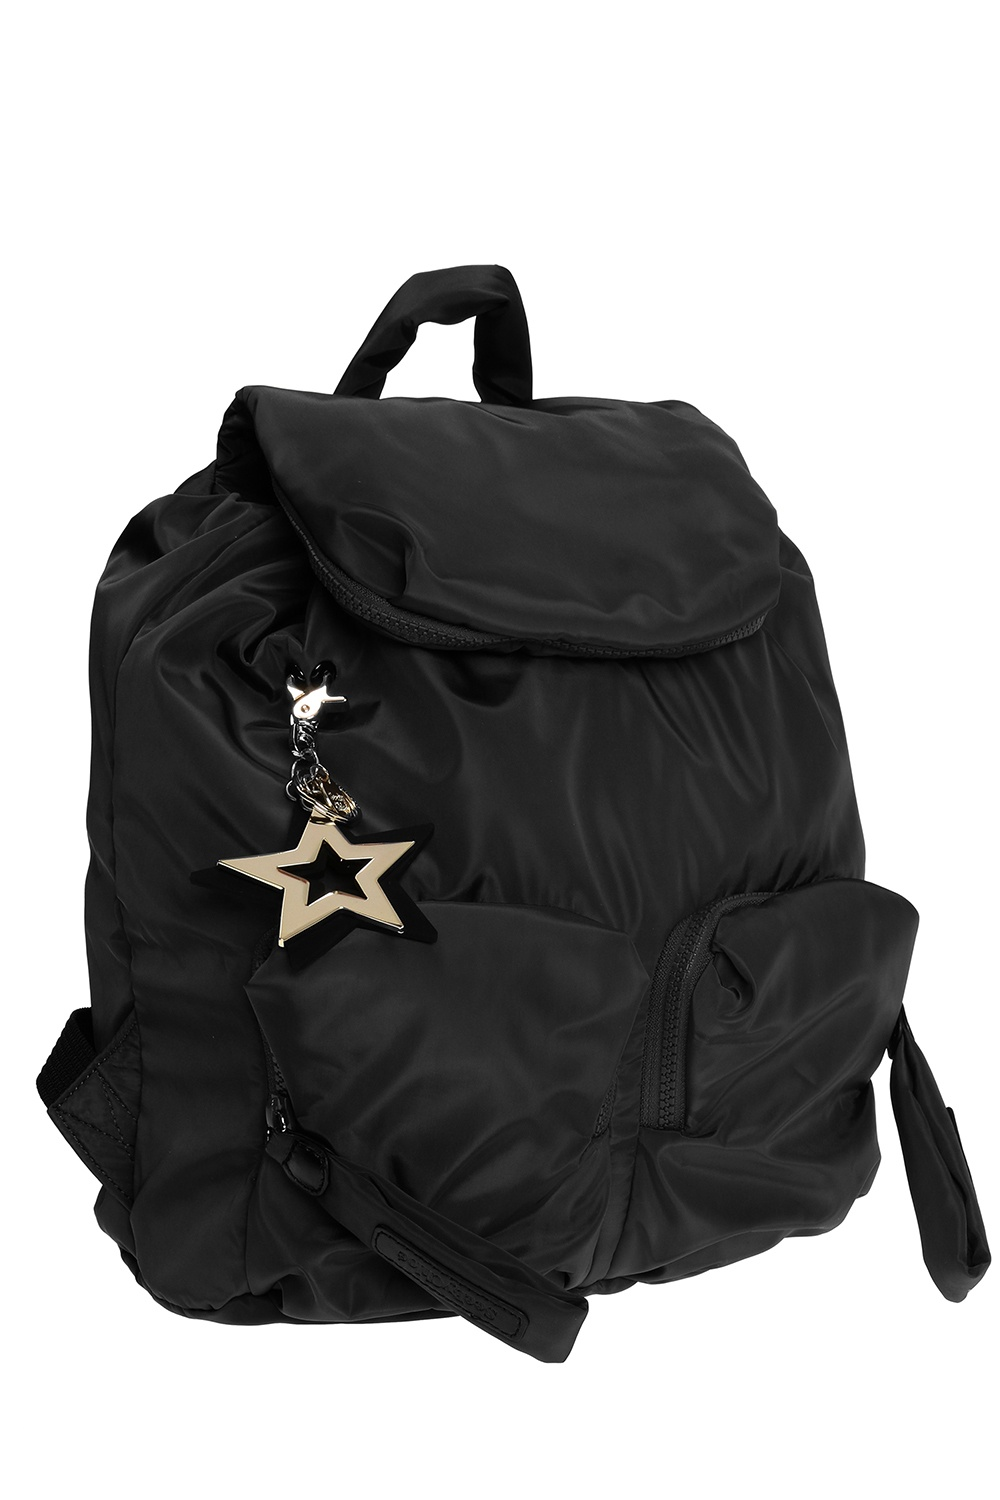 See By Chloe 'Joyrider' backpack